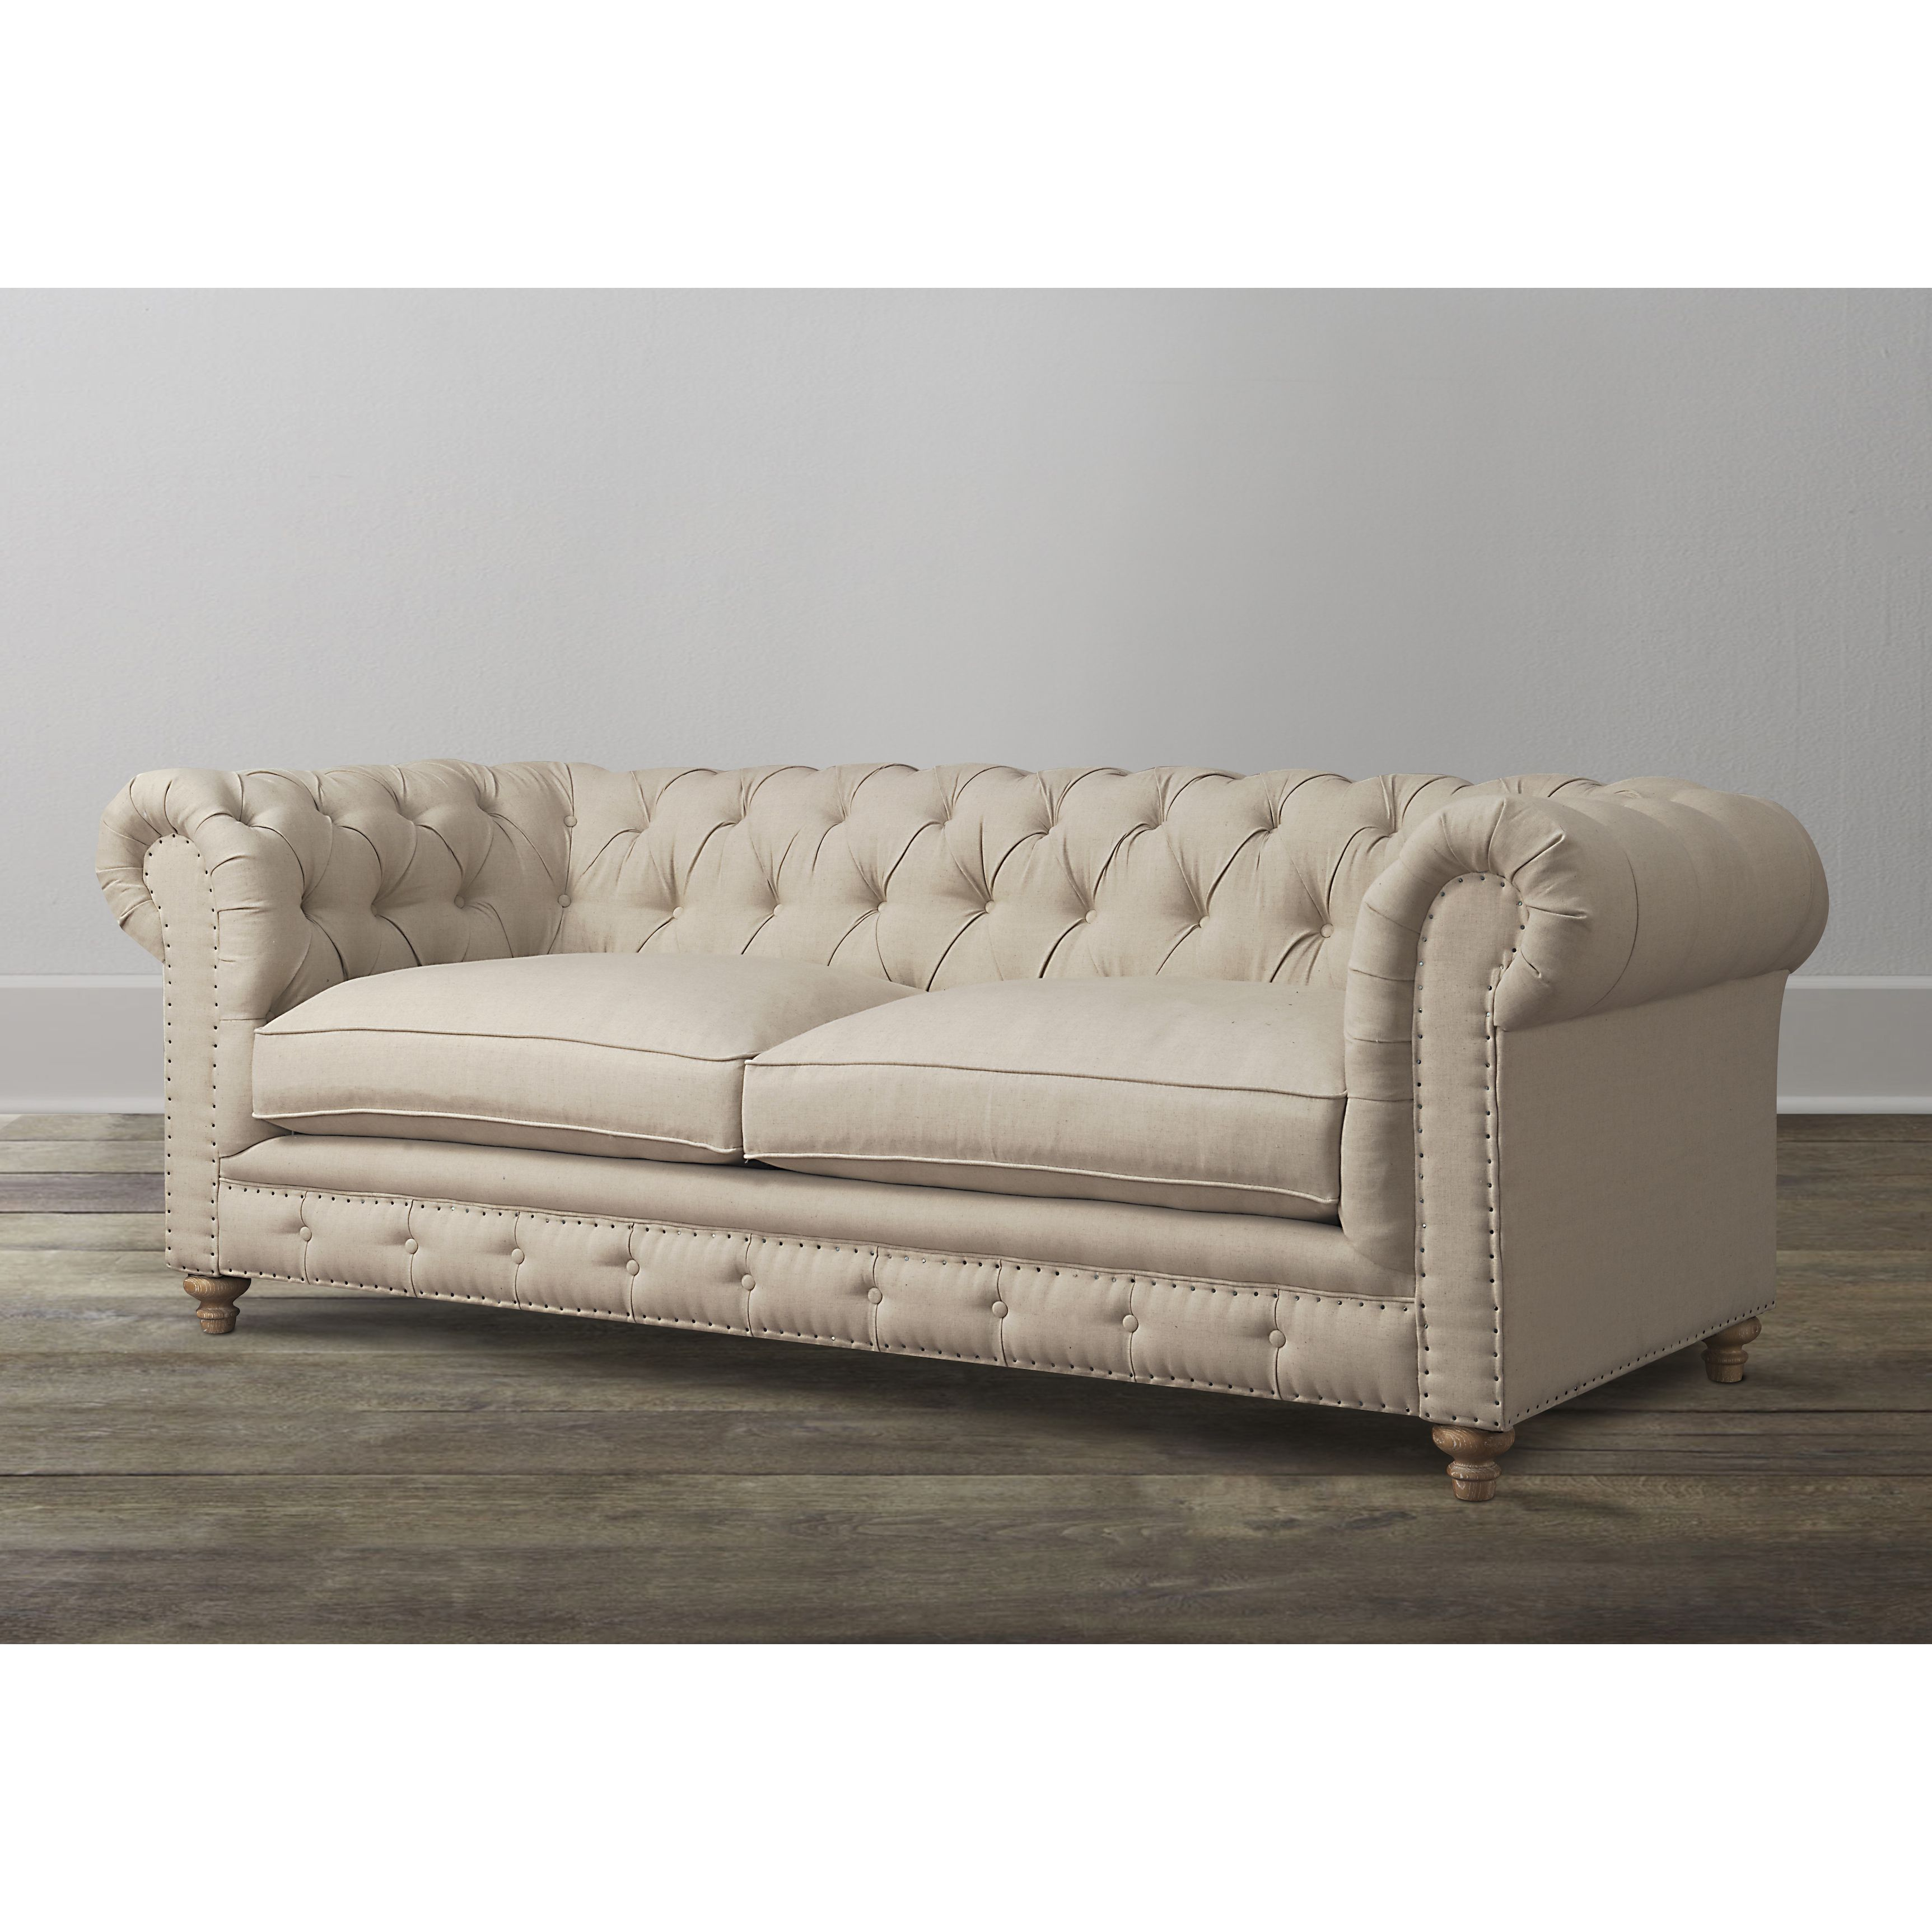 Luxury Canapé Style Chesterfield